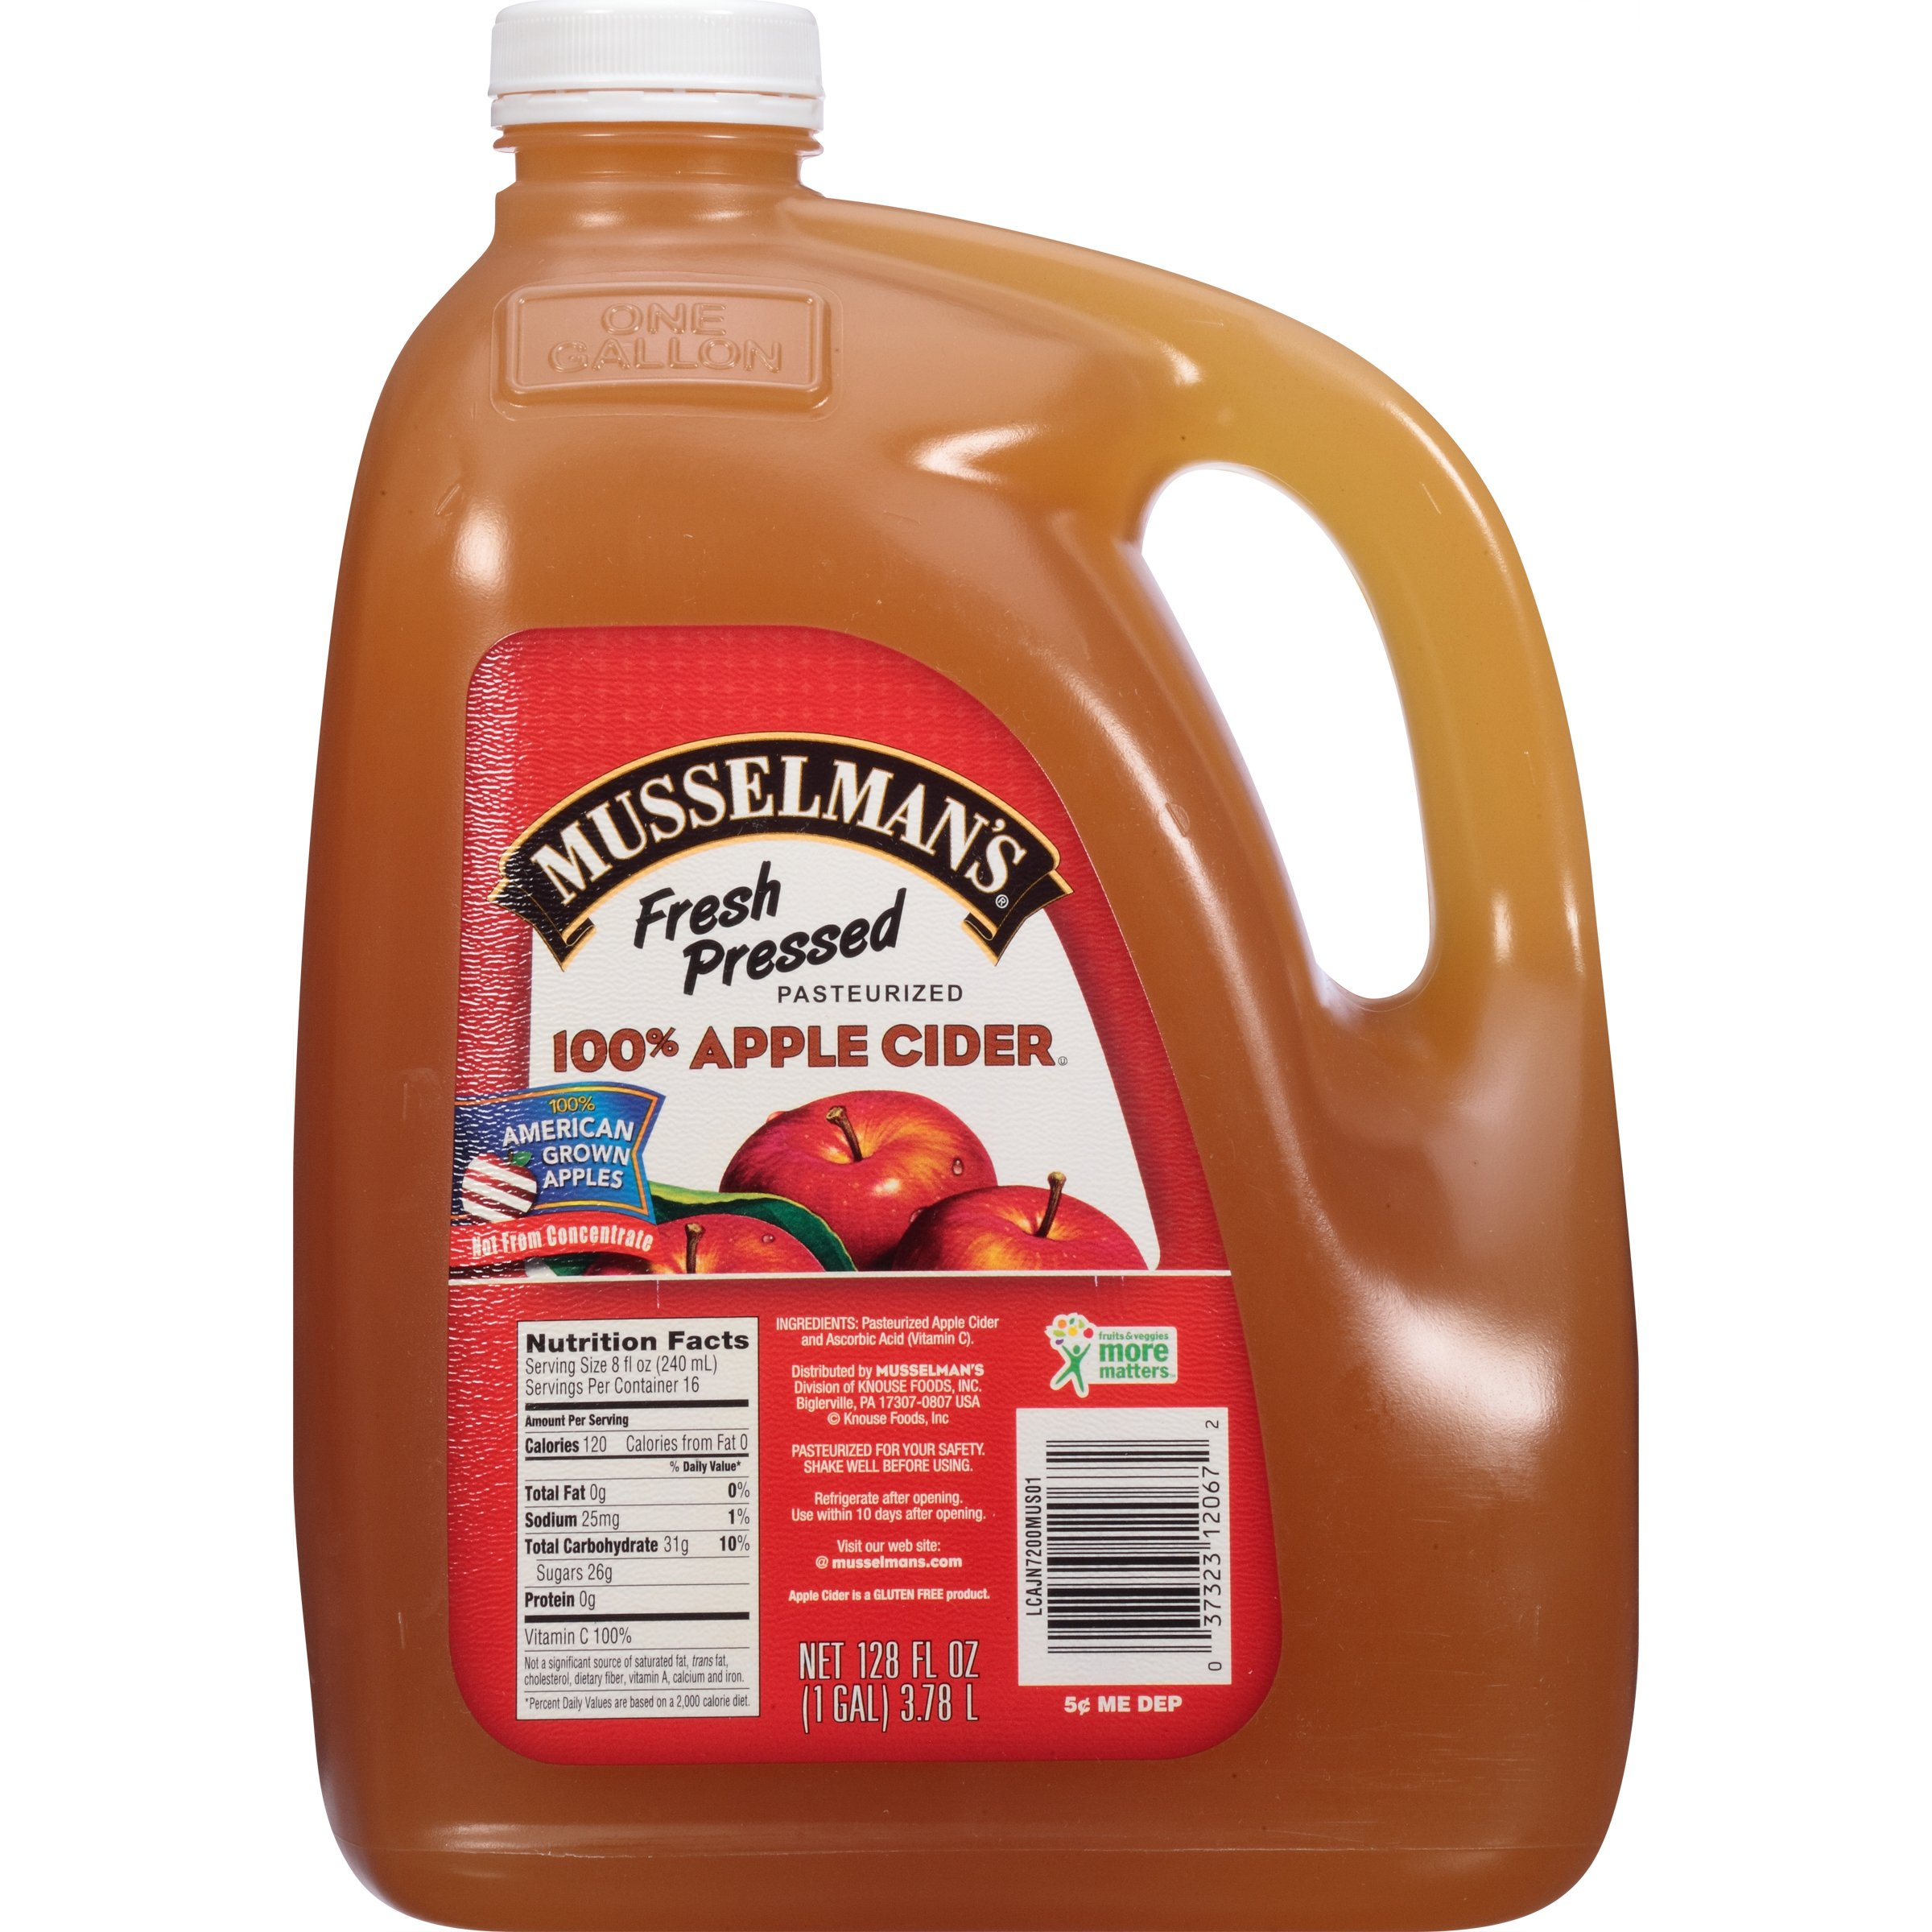 Musselman's 100% Fresh Pressed Apple Cider, 128 Fluid Ounce (Pack of 4) by Musselmans (Image #4)